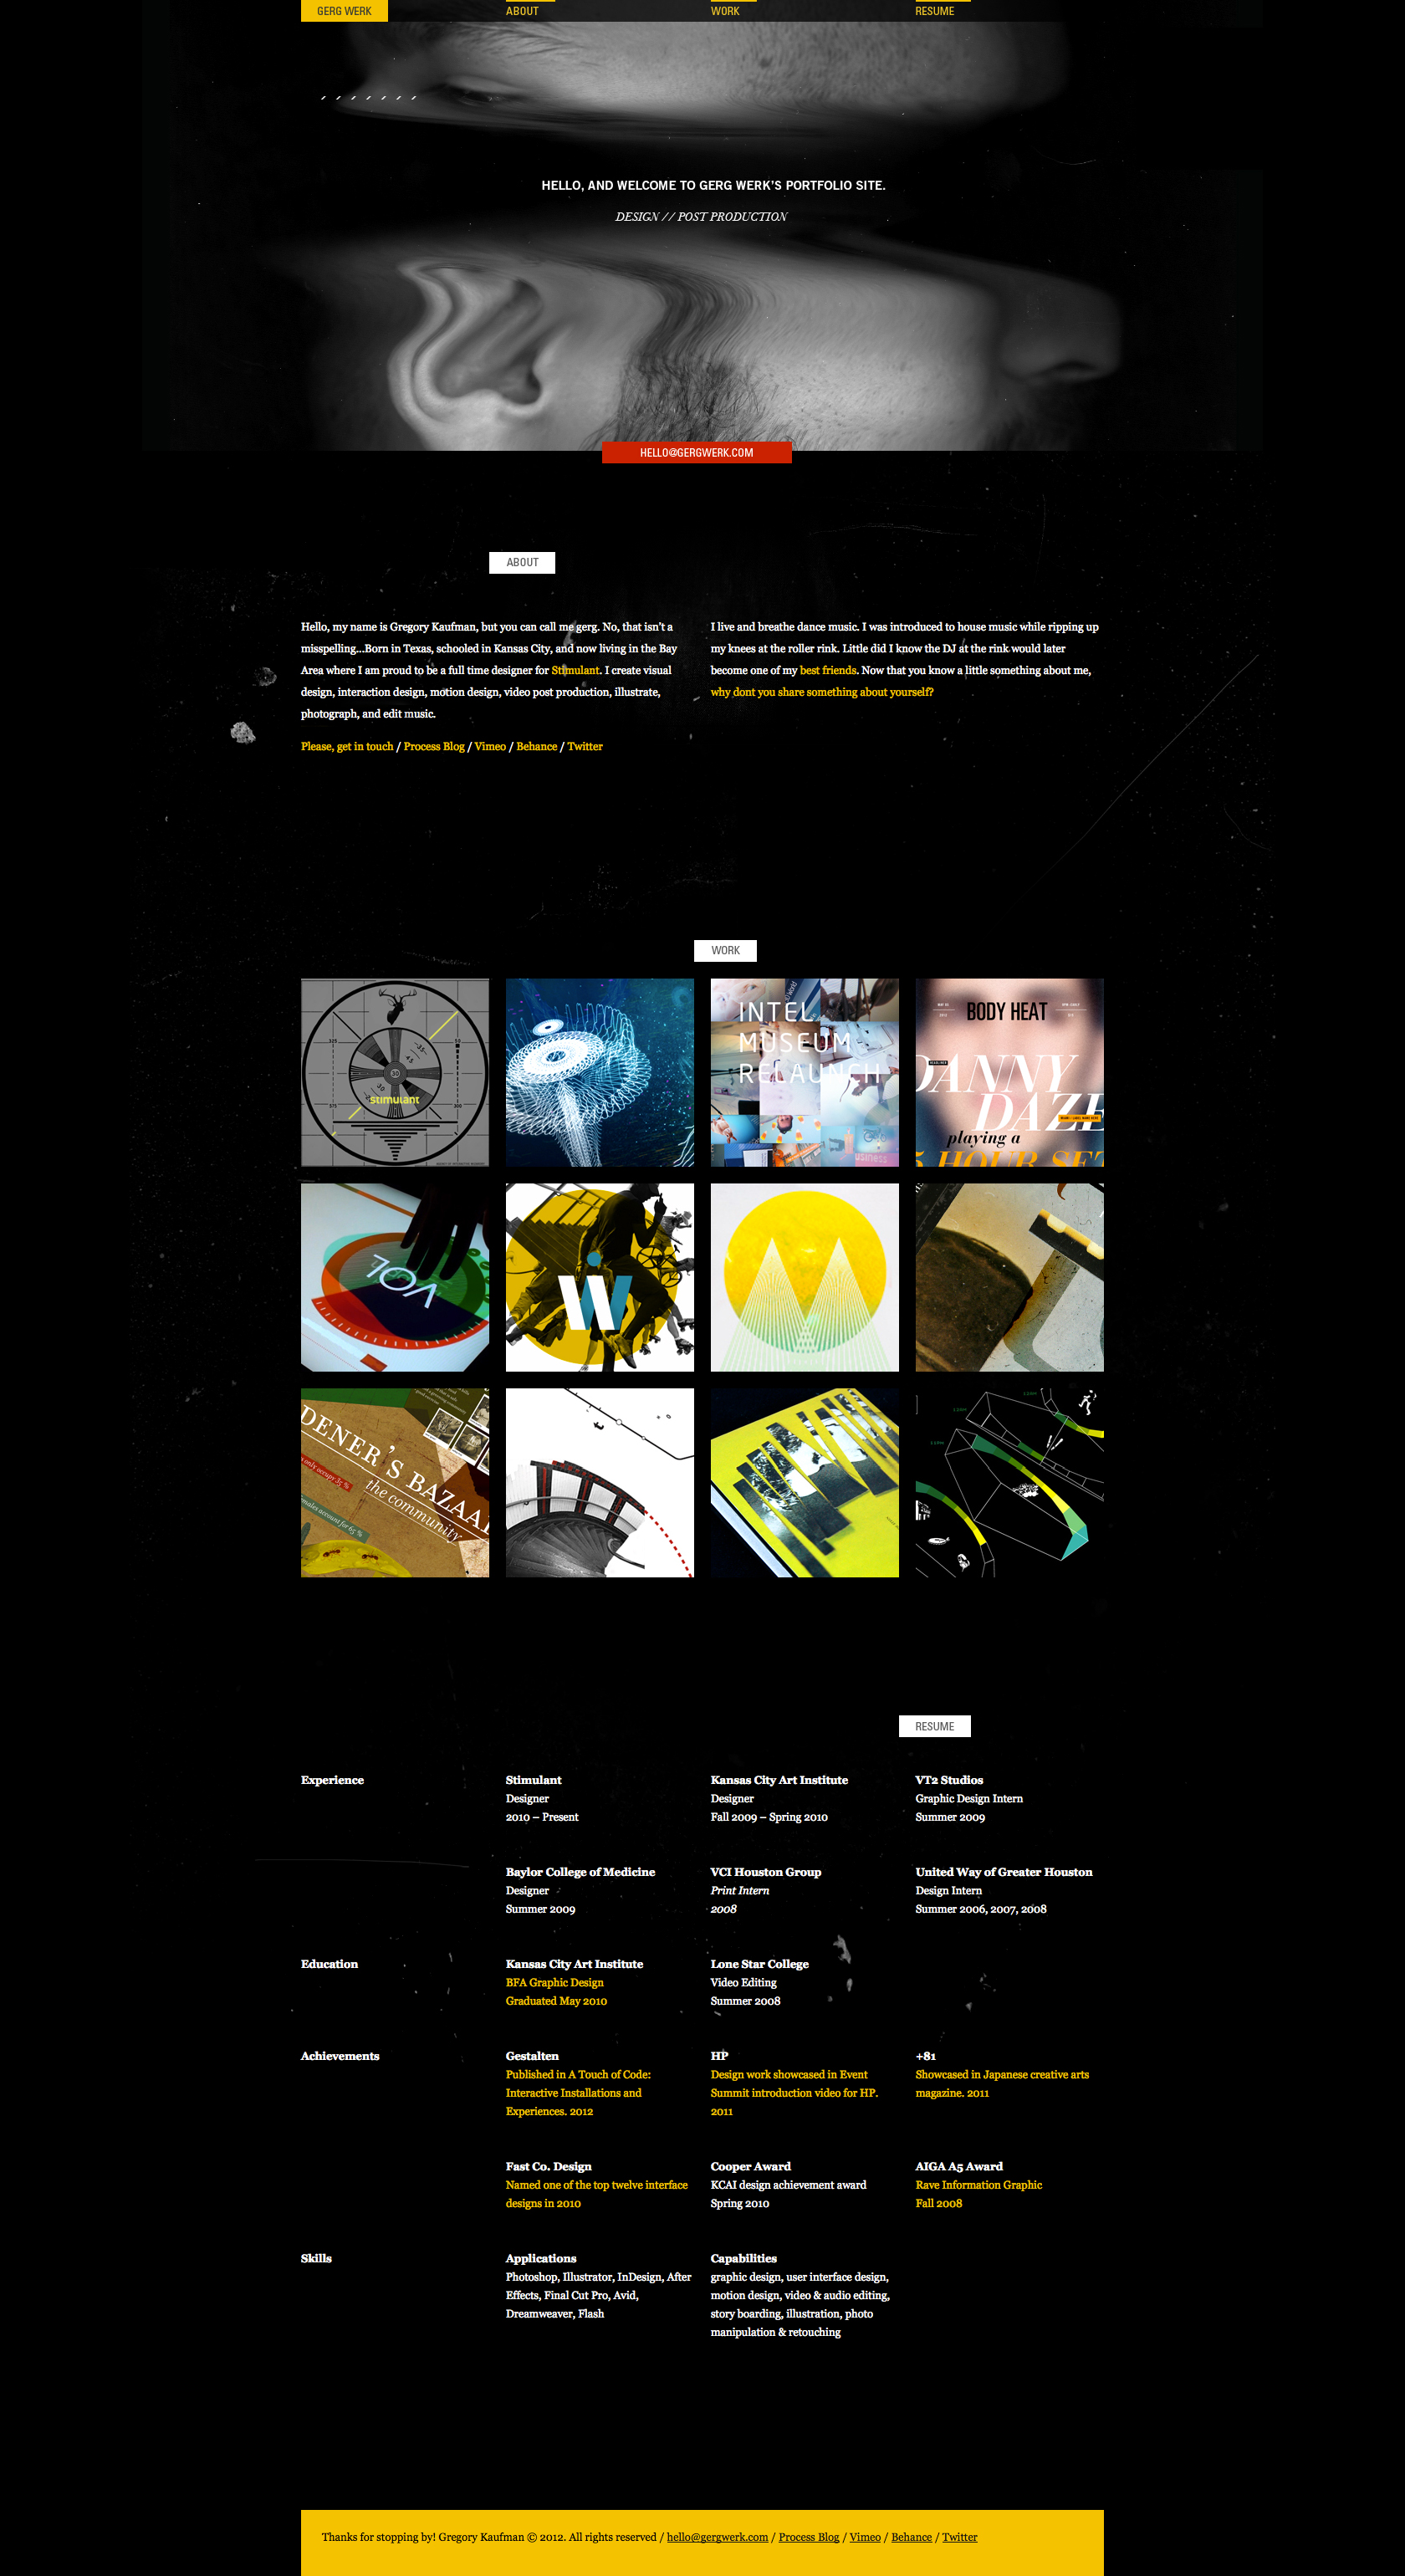 gergwerk website design 2012